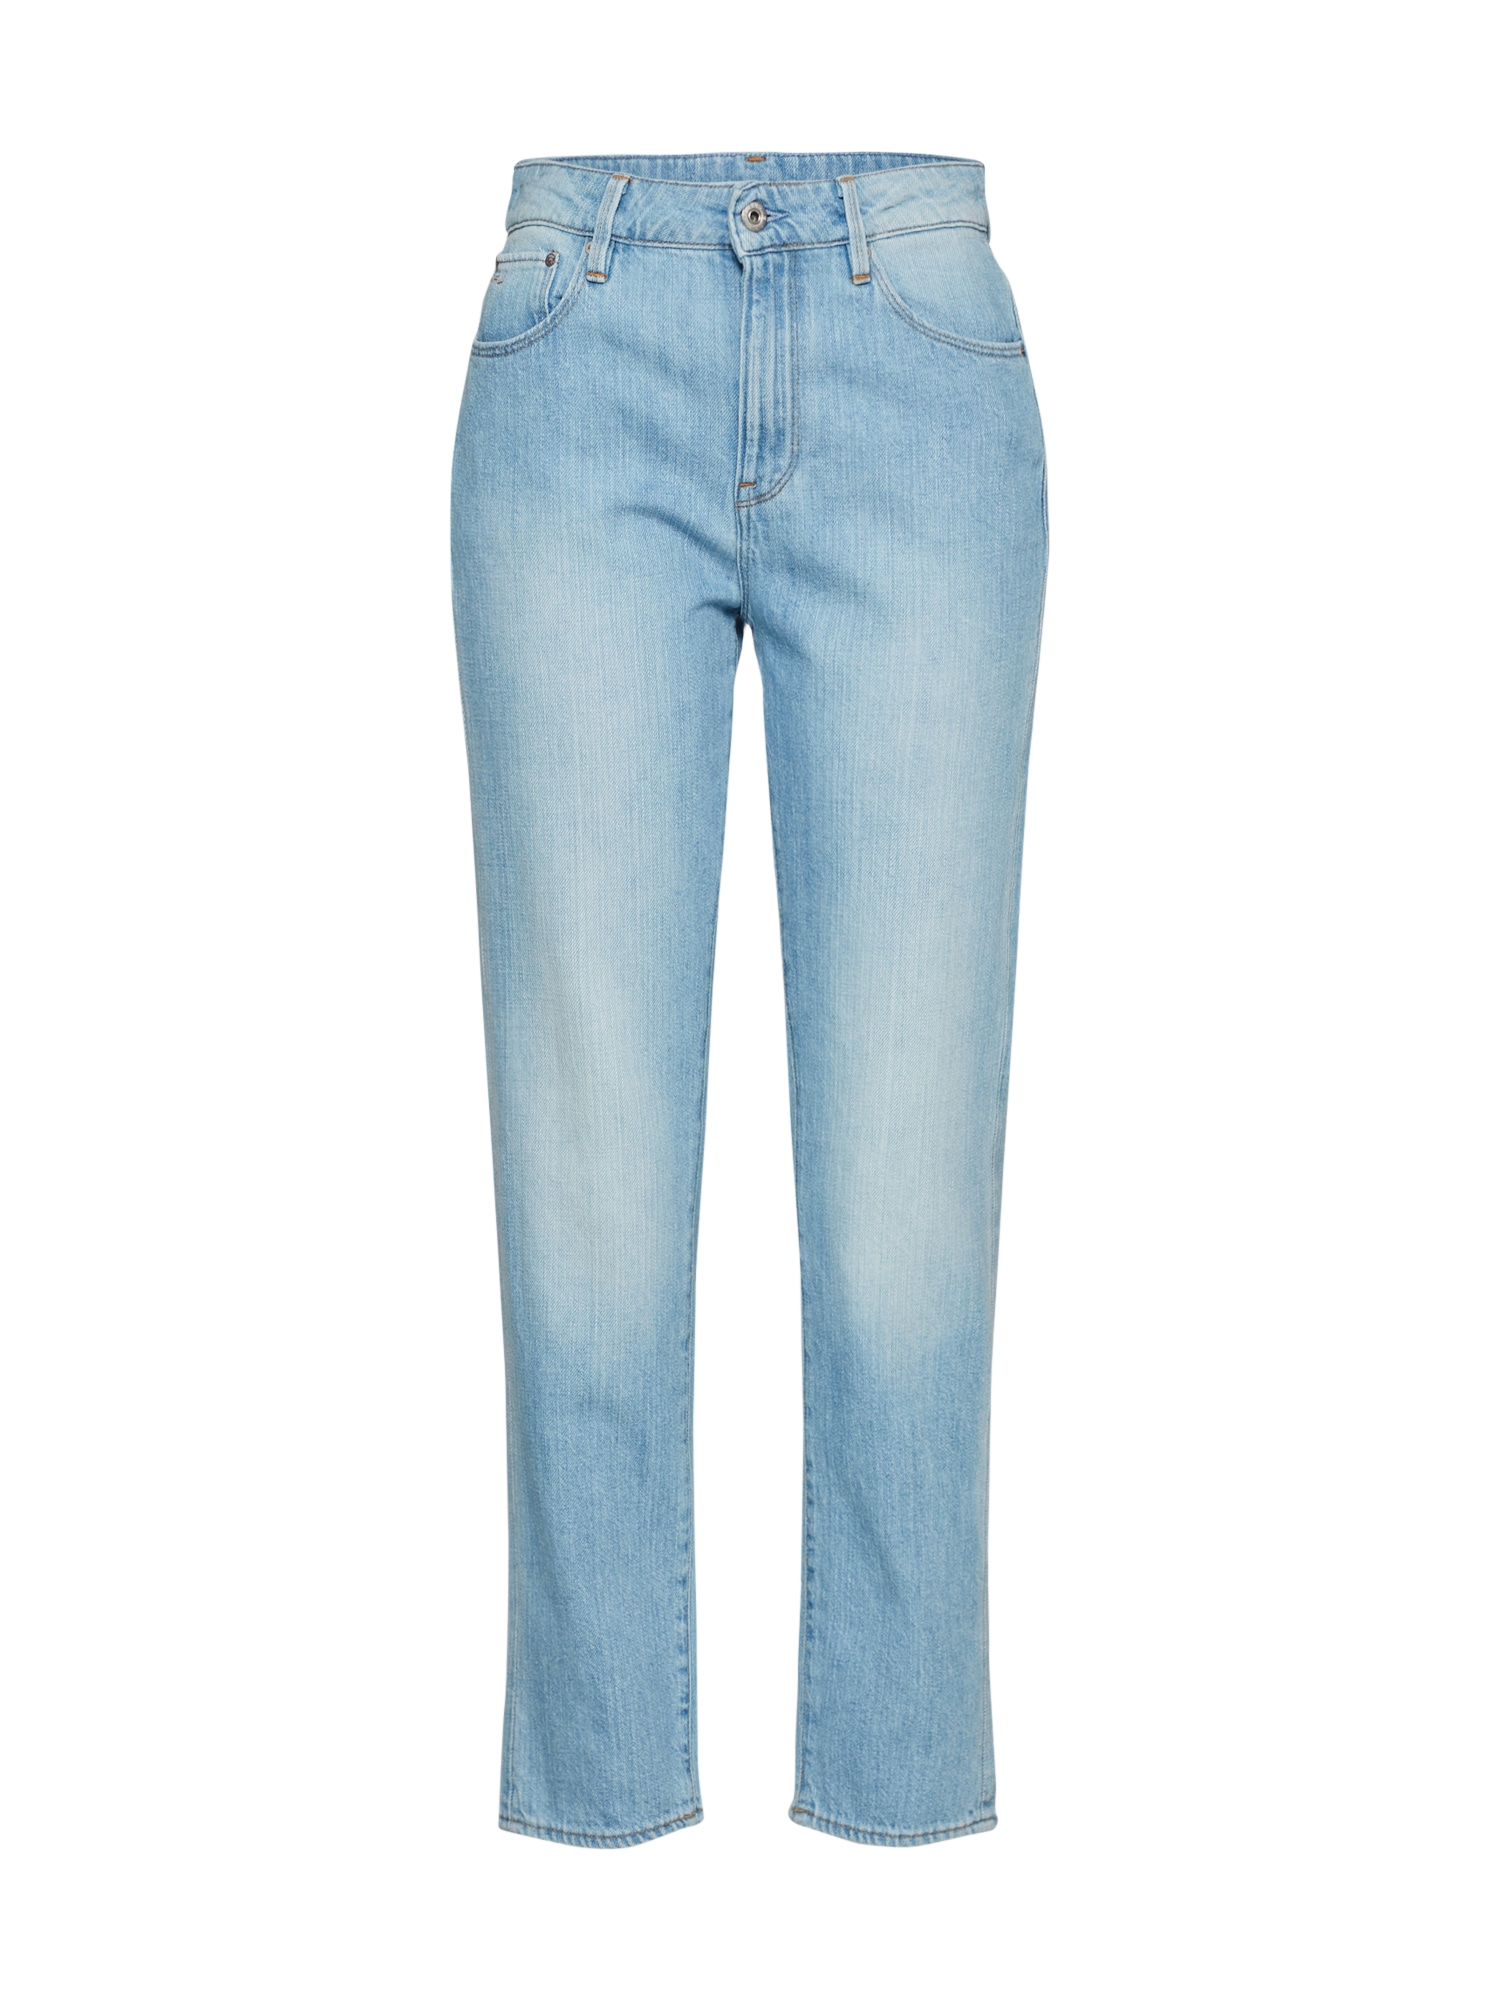 G-STAR RAW Dames Jeans 3301 High Straight 90's Ankle Wmn blauw denim